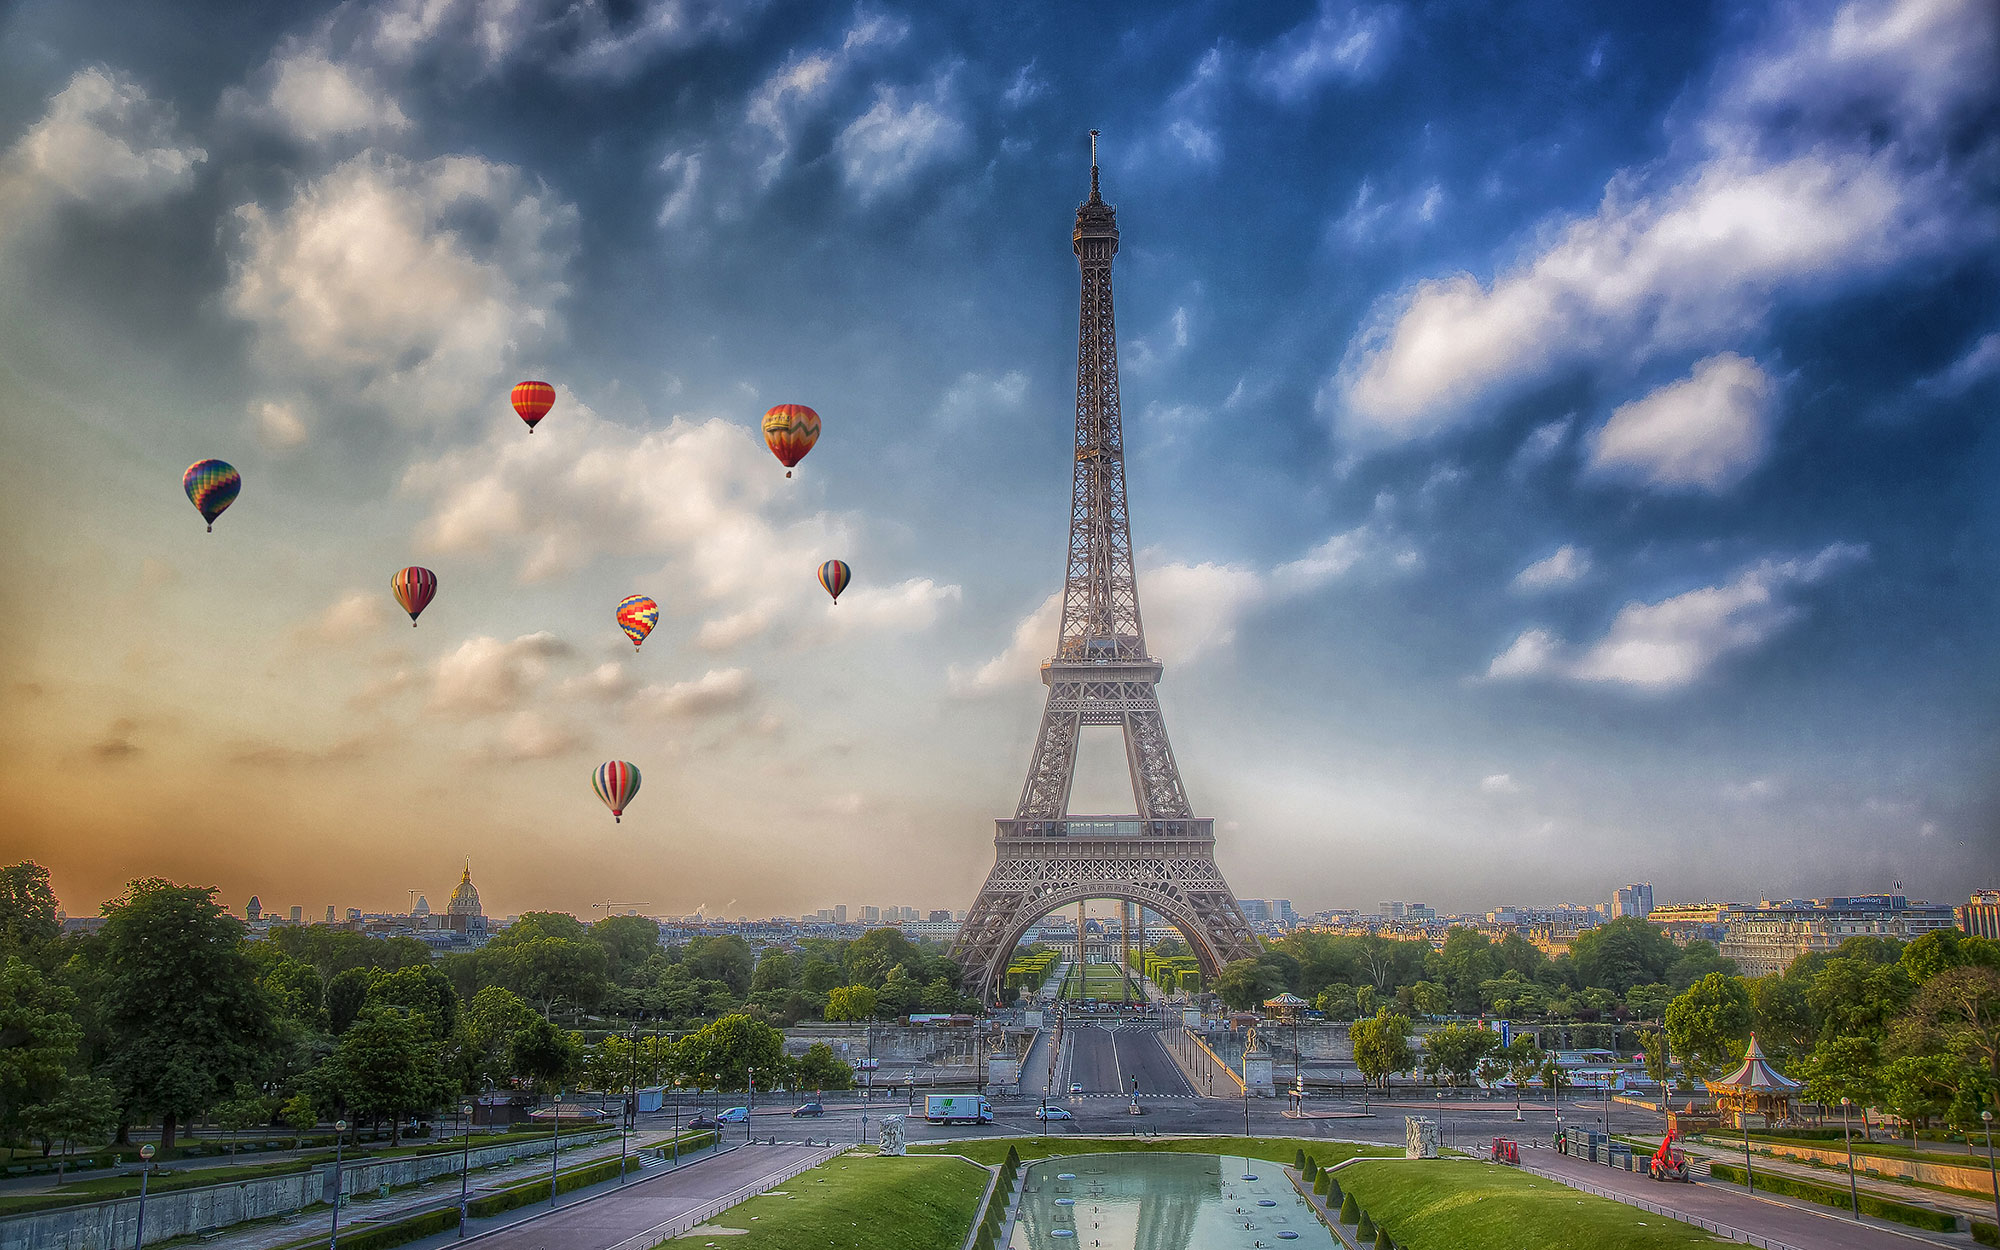 Hot-Air Balloons at the Eiffel Tower